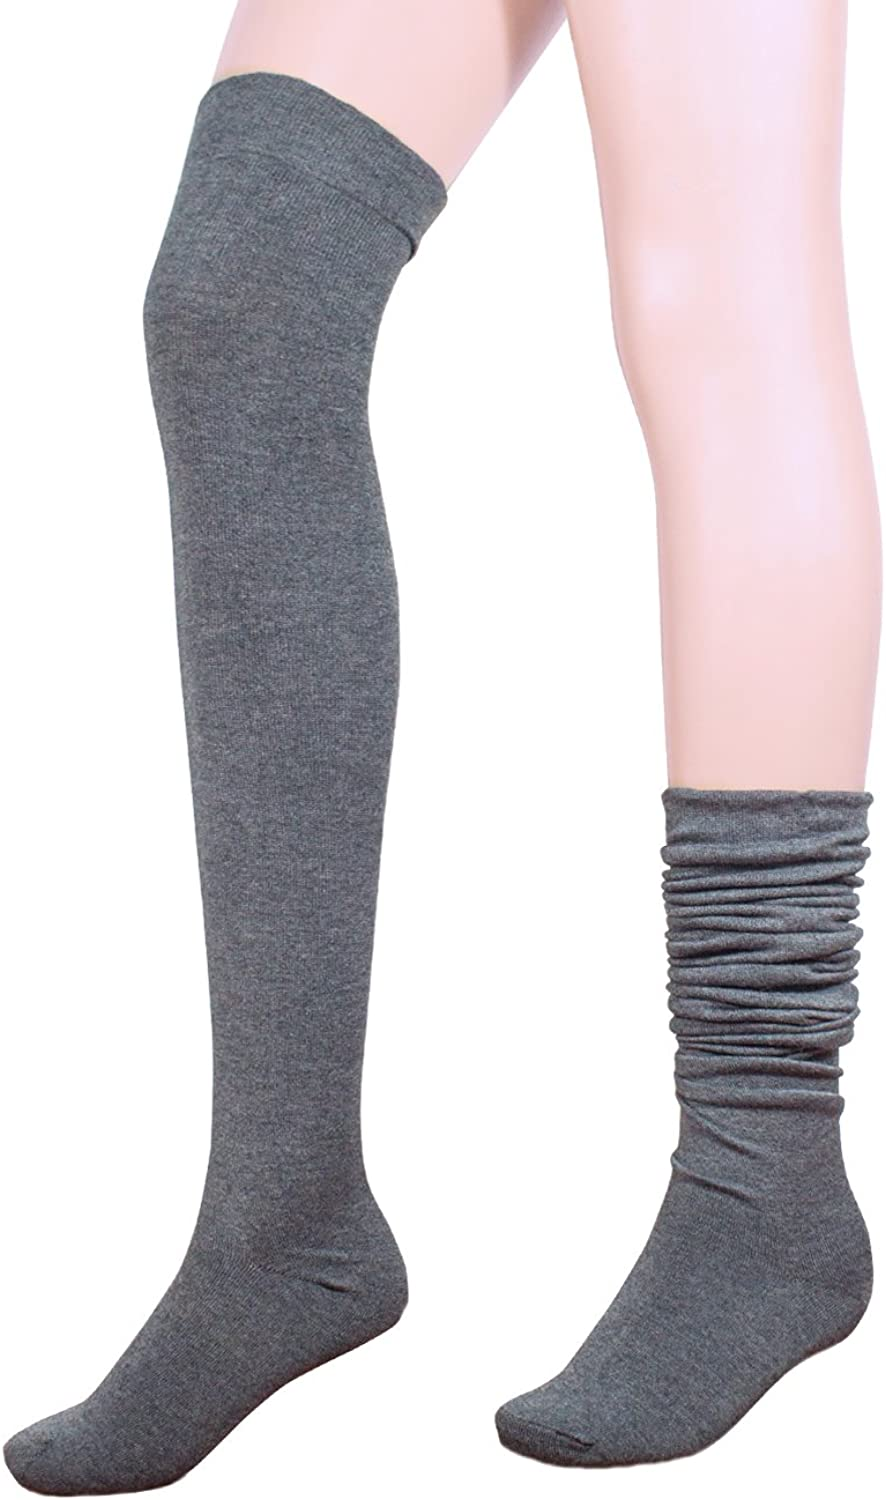 Dahlia Women's Wool Blend Socks  Above the Knee Solid color